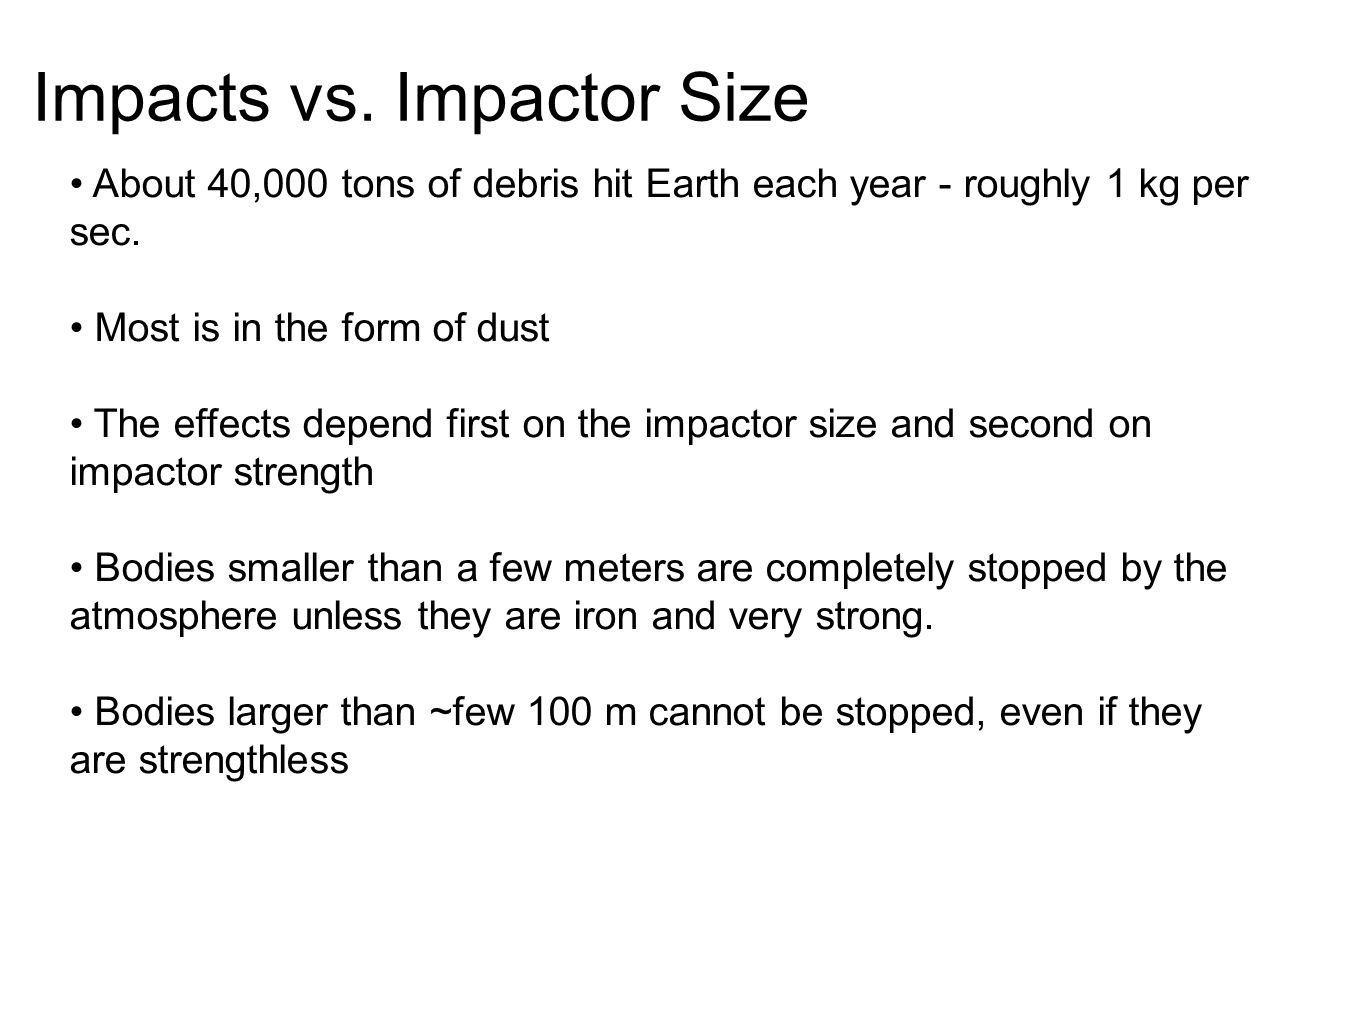 About 40,000 tons of debris hit Earth each year - roughly 1 kg per sec.